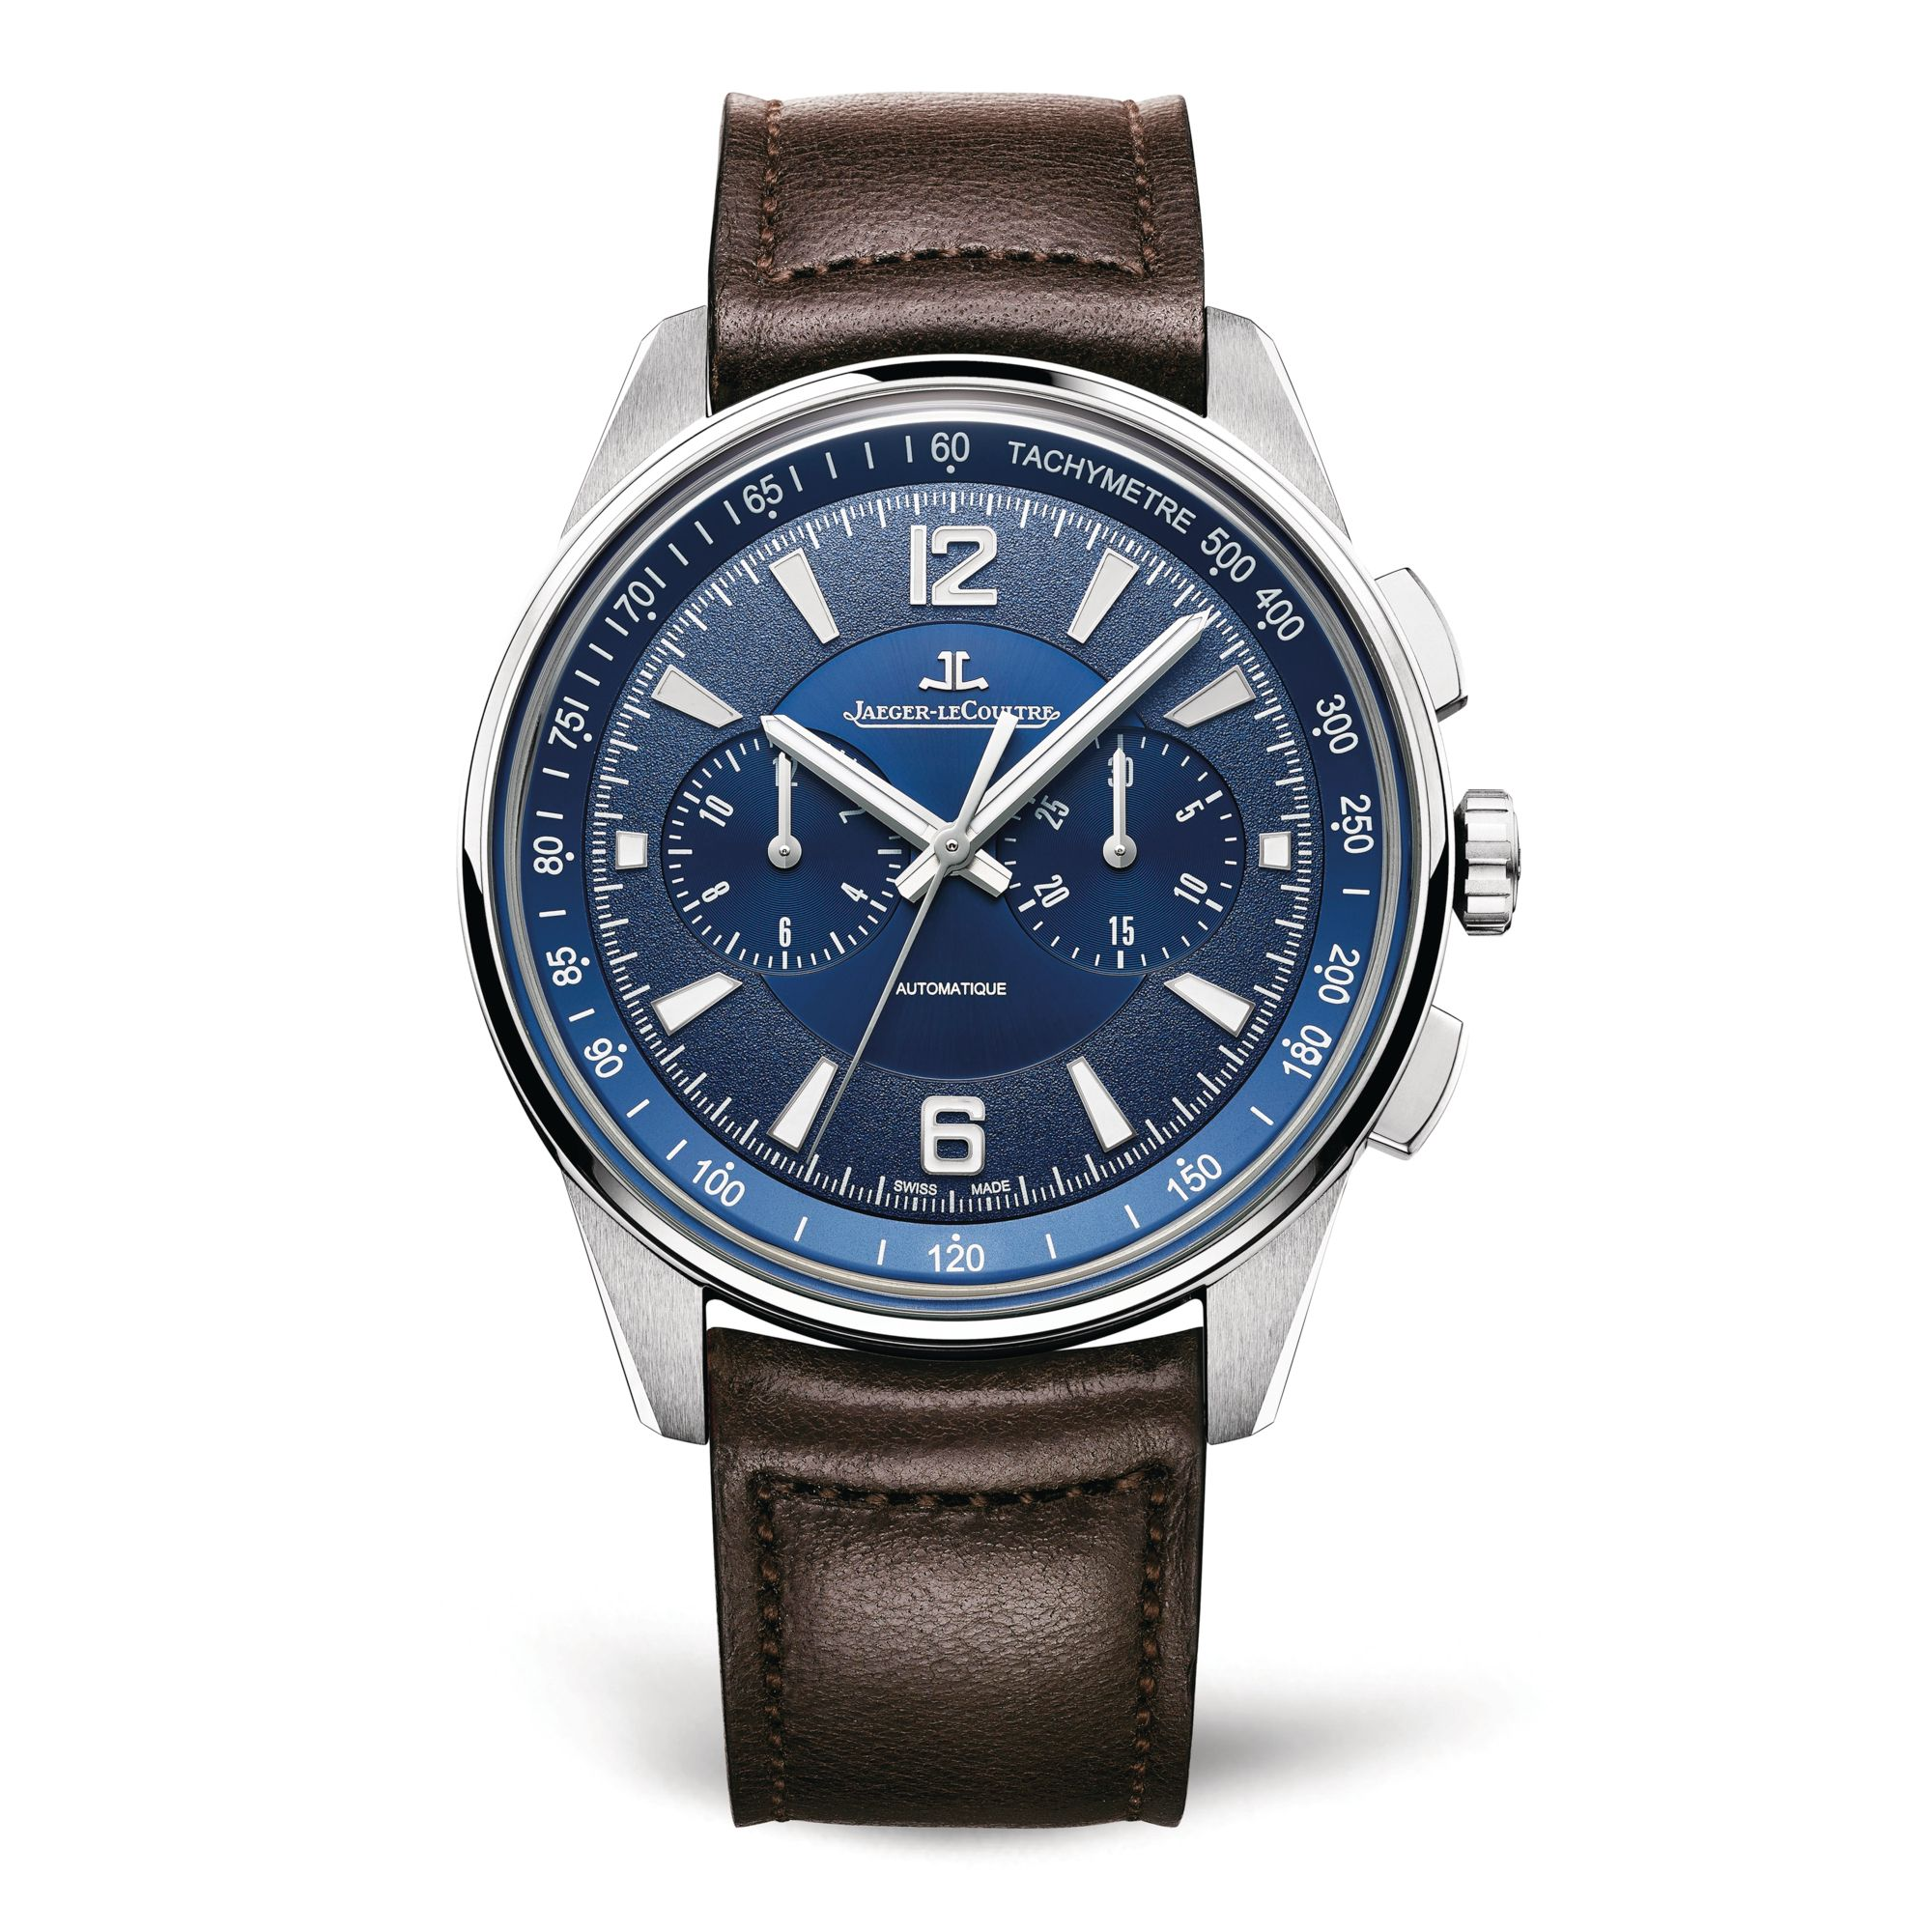 Polaris Chronograph by Jaeger-LeCoultre